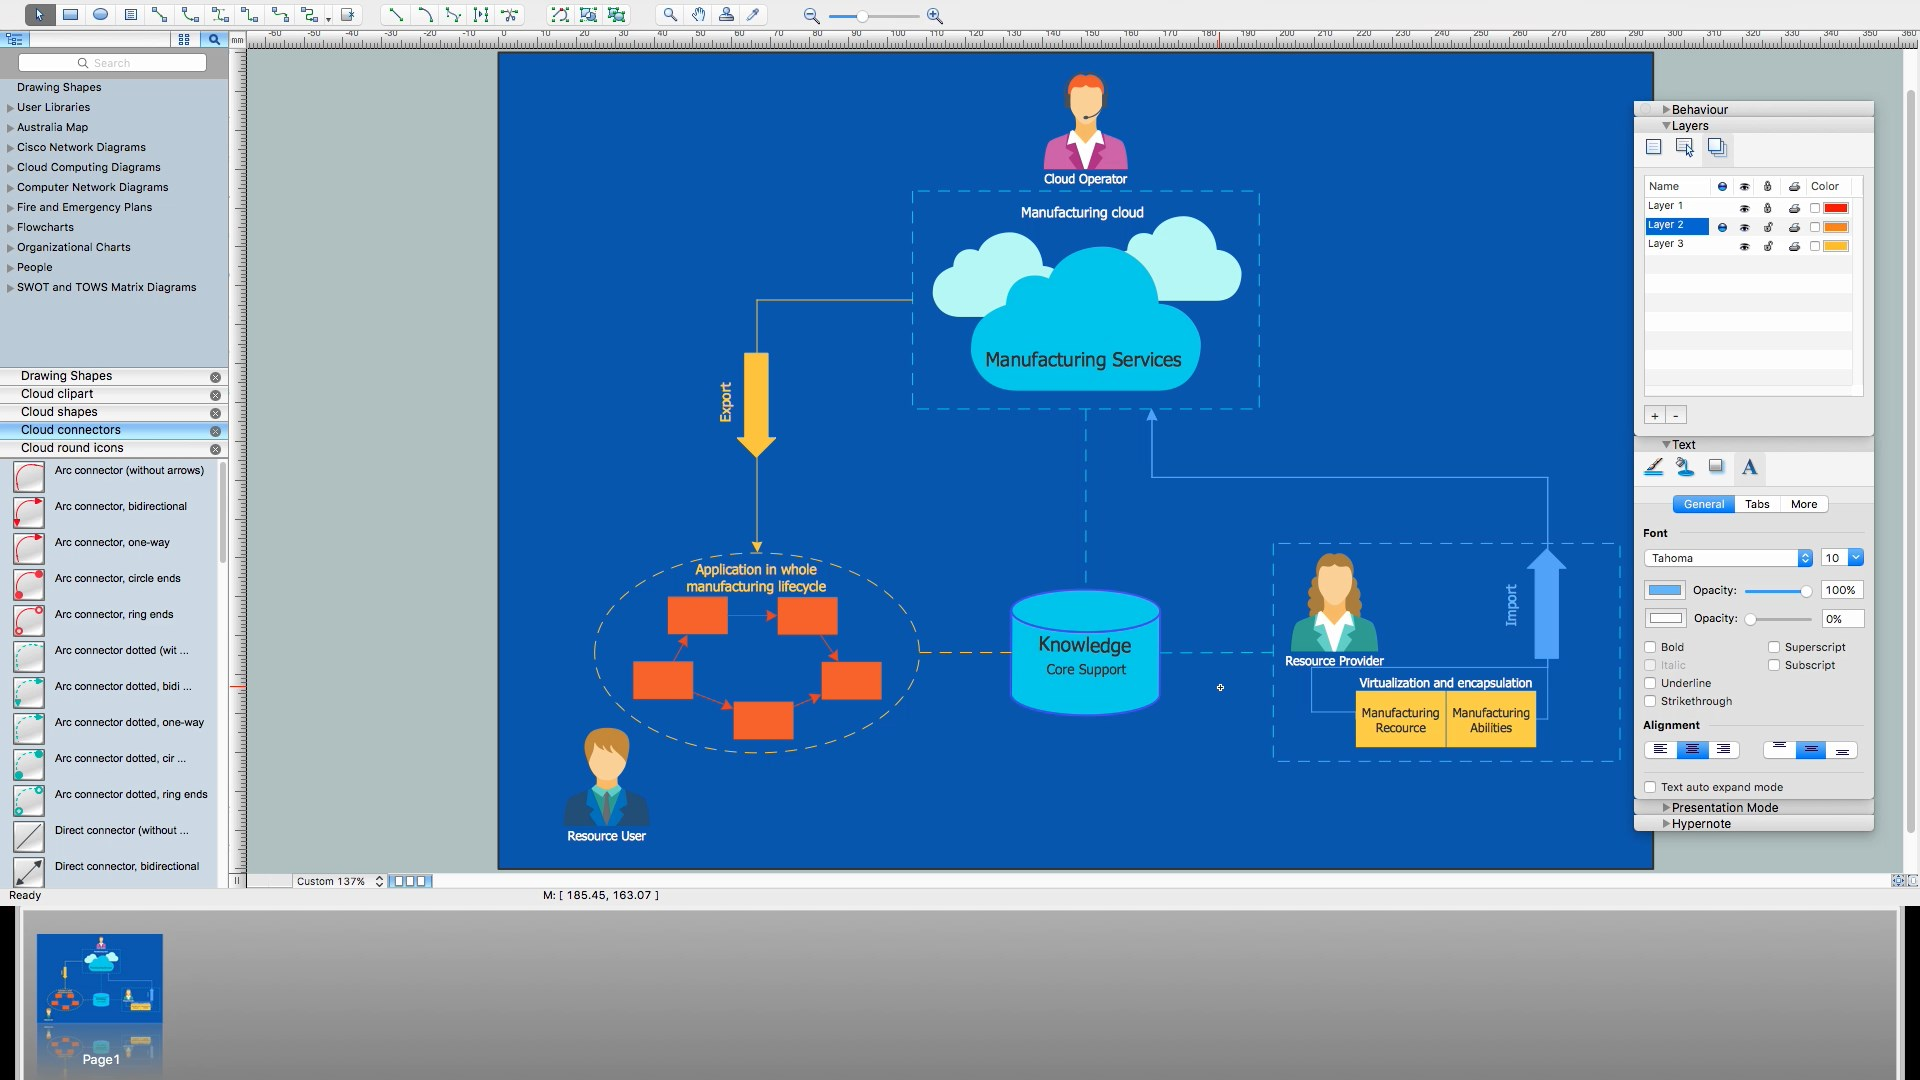 How to Build Cloud Computing Diagram<br>Principal Cloud Manufacturing *